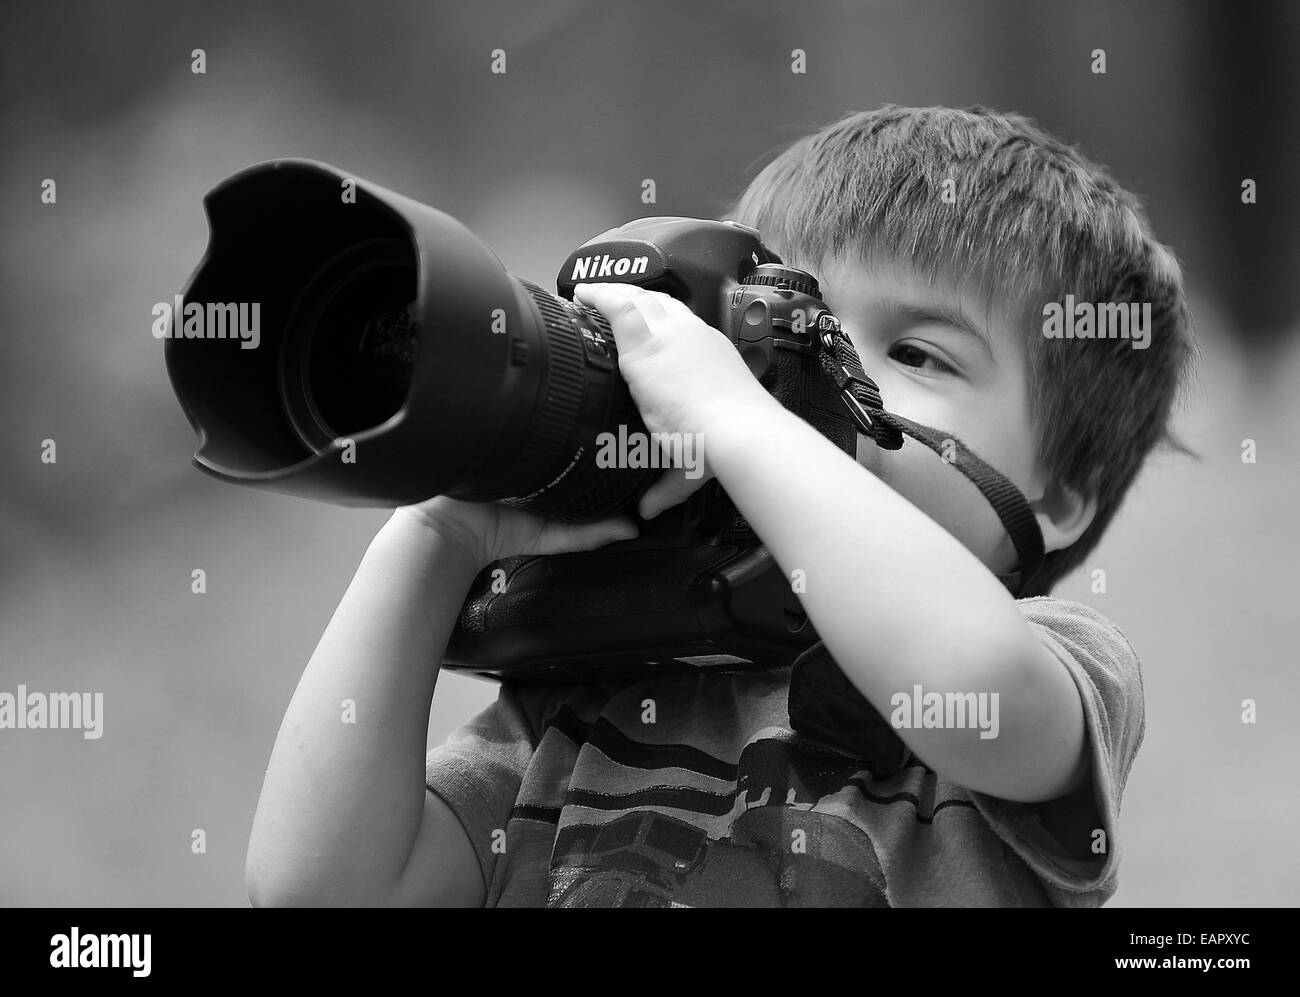 A young 3yr old boy trying out his dads Nikon D3 professional camera while out on a family walk in Melbourne, Australia. - Stock Image